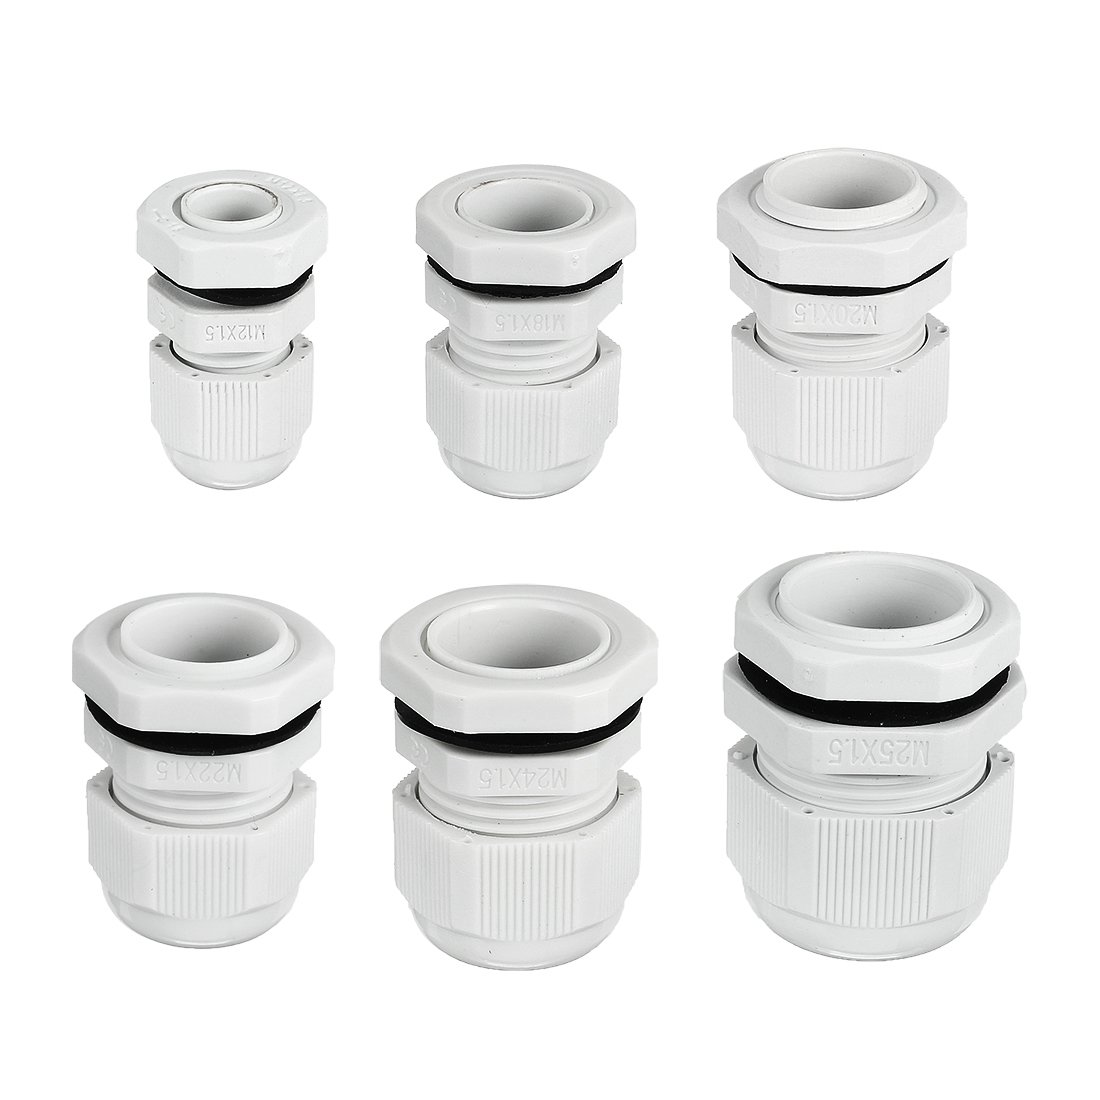 uxcell PG7 PG9 PG11 PG13.5 PG16 PG21 Waterproof Nylon Cable Gland Joint Adjustable Connector for 3mm-18mm Dia Cable Wire Pack of 30